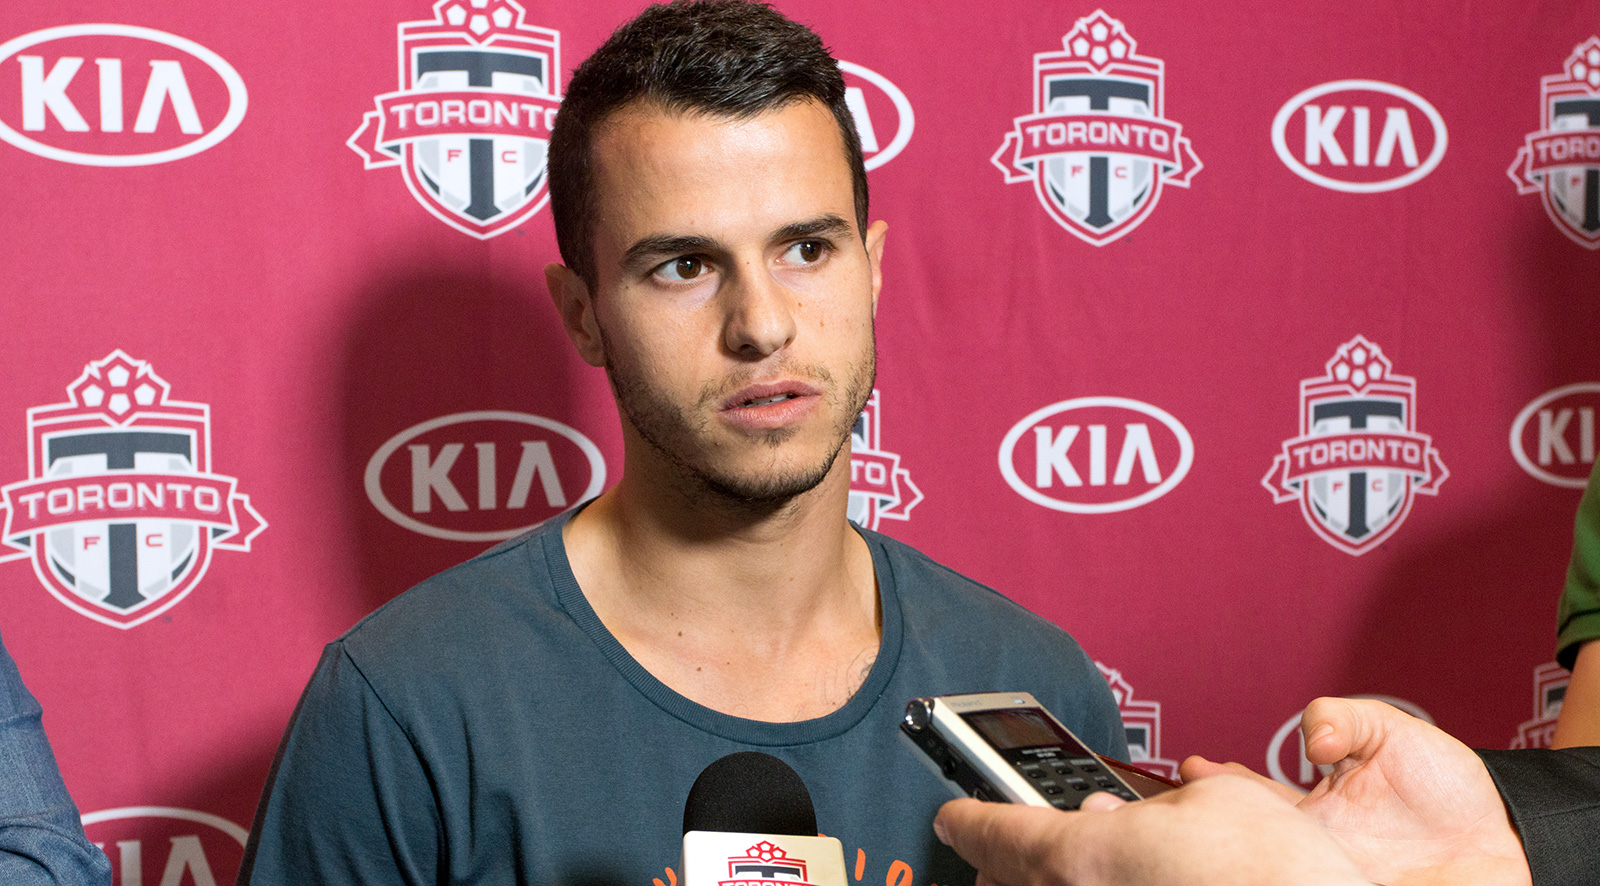 Toronto FC's Sebastian Giovinco answer questions from the media during the 2016 TFC Playoff Press Conference.Photo by Dennis Marciniak